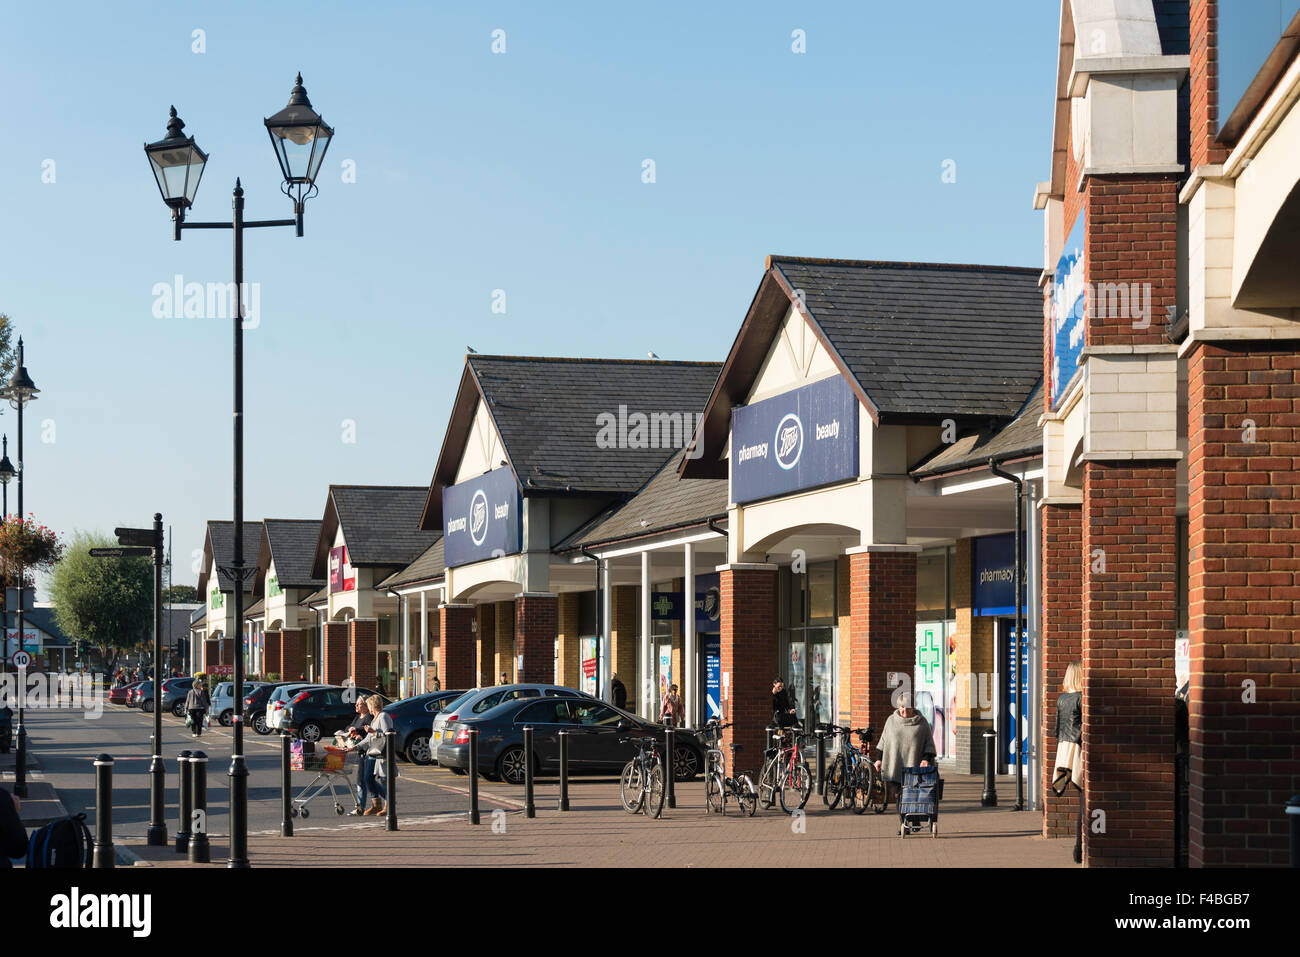 Two Rivers Shopping Centre, Staines-upon-Thames, Surrey, England, United Kingdom - Stock Image